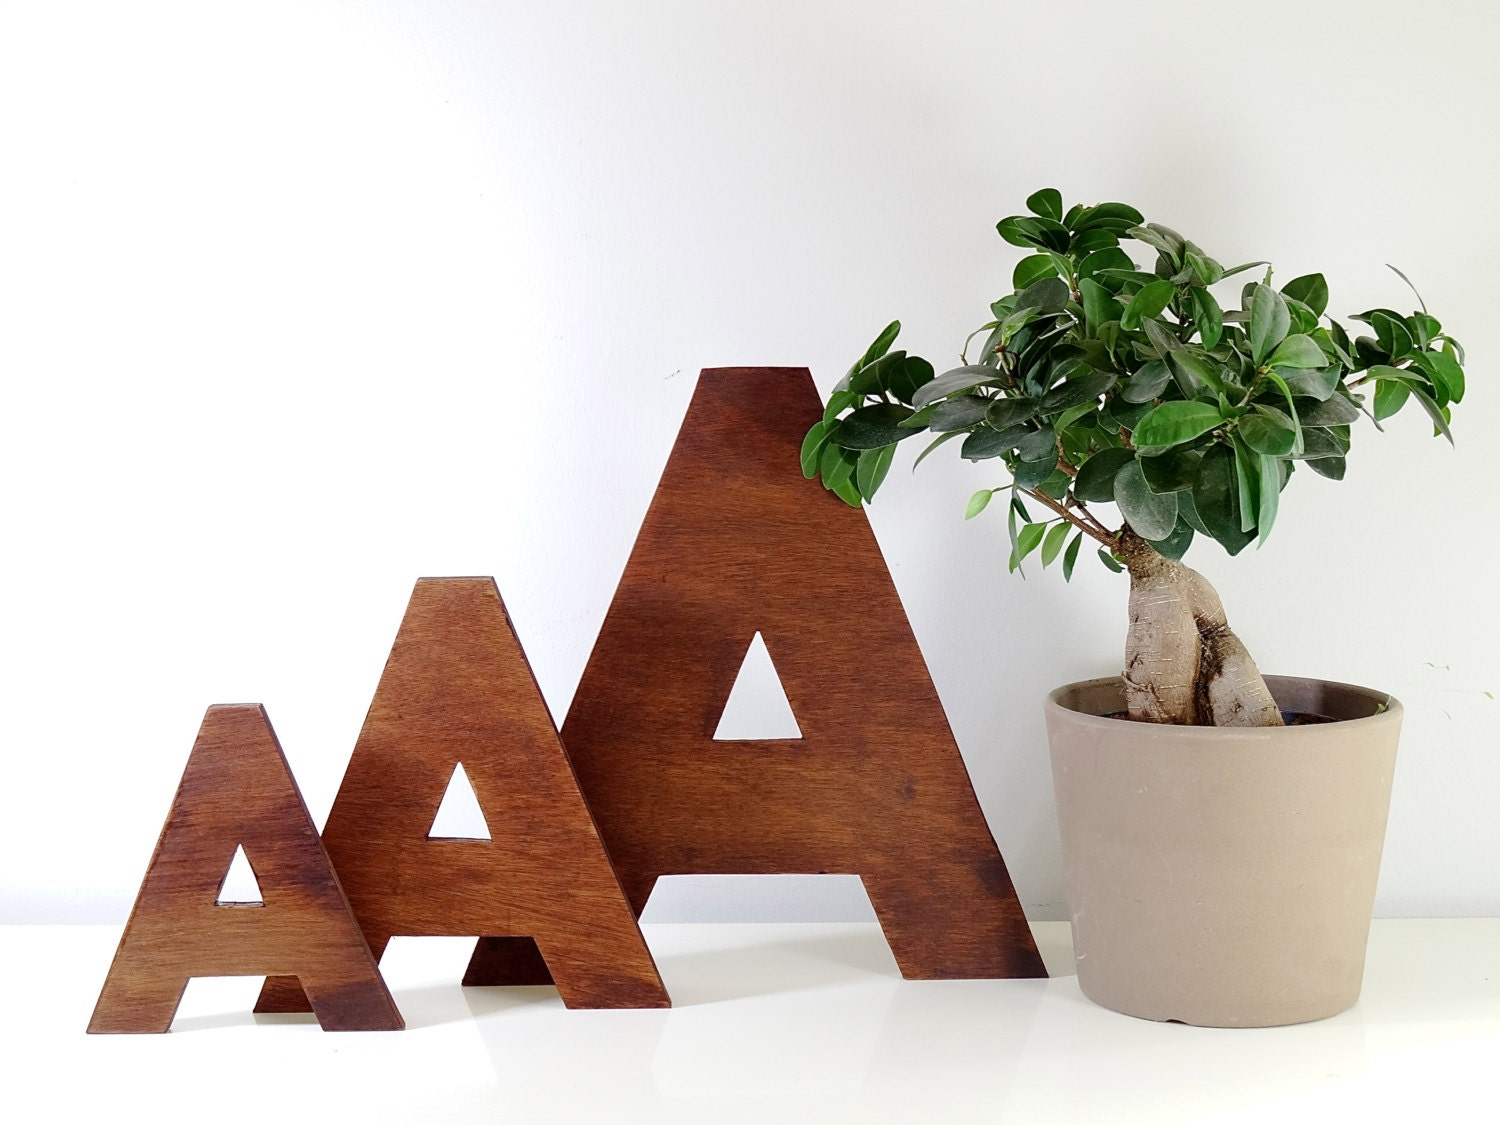 Wooden letters decorative letters for wall decor 6 16 - Decorative wooden letters for walls ...